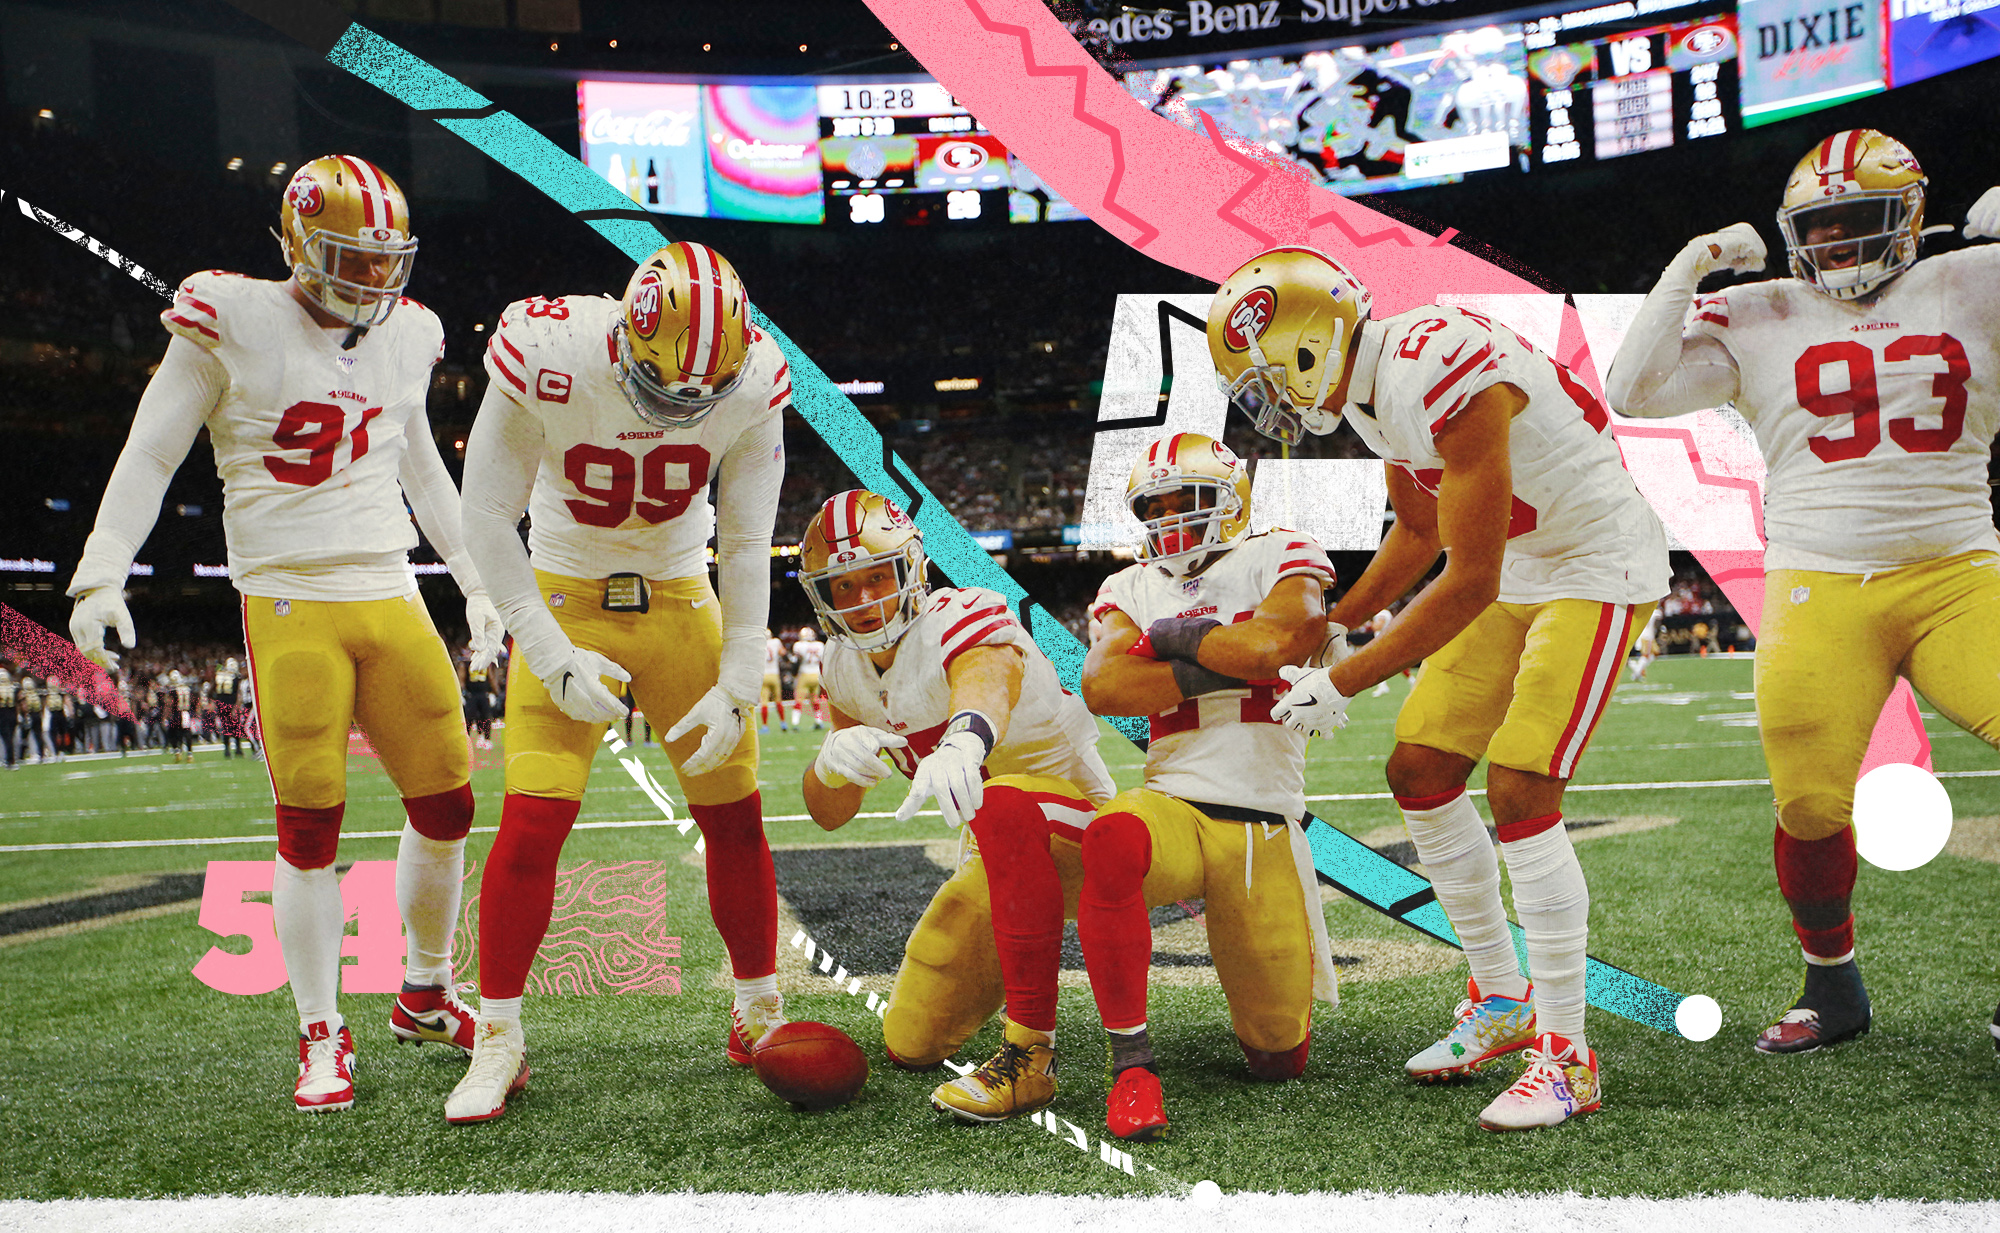 Members of the 49ers defense, including pass rushers Nick Bosa and DeForest Buckner, pose for the camera, with pink, teal, white lines in the background